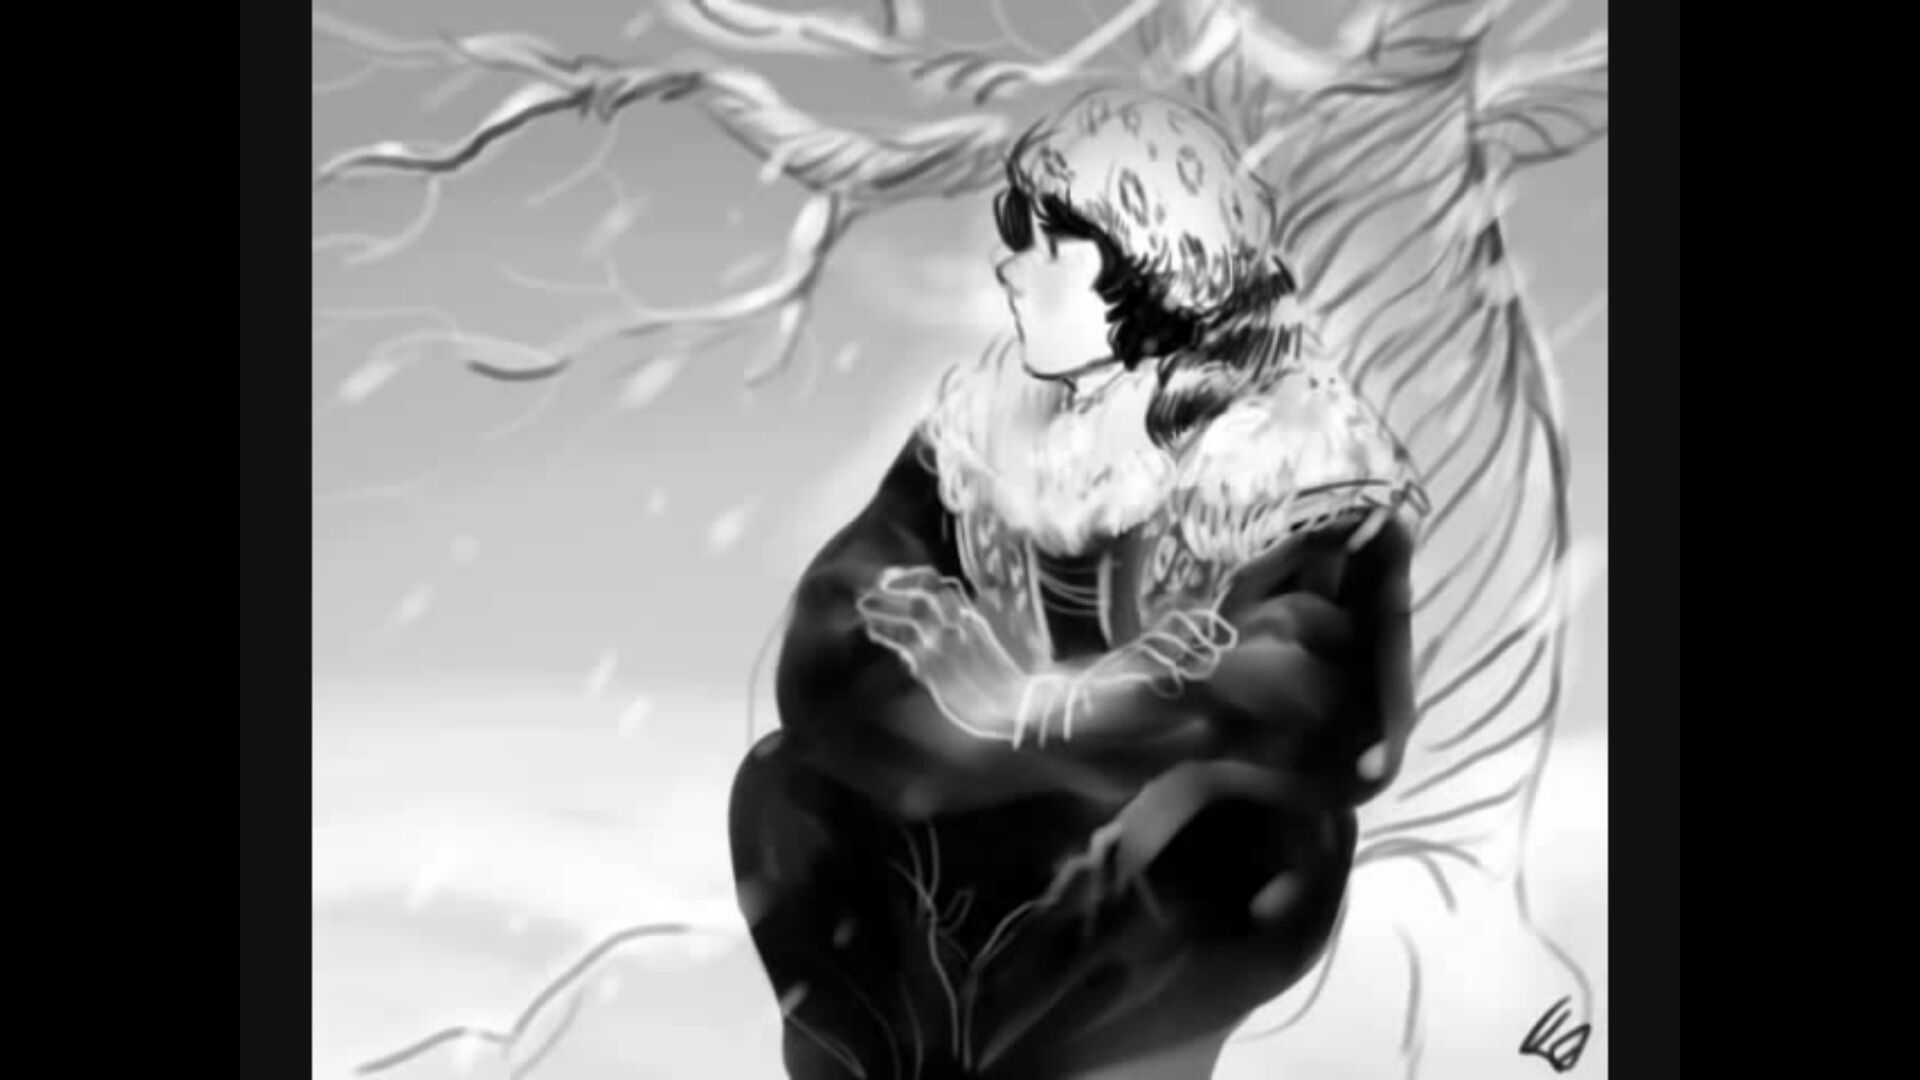 Ninjago Oneshots - Best Snow Day Ever: Cole x Reader - Wattpad